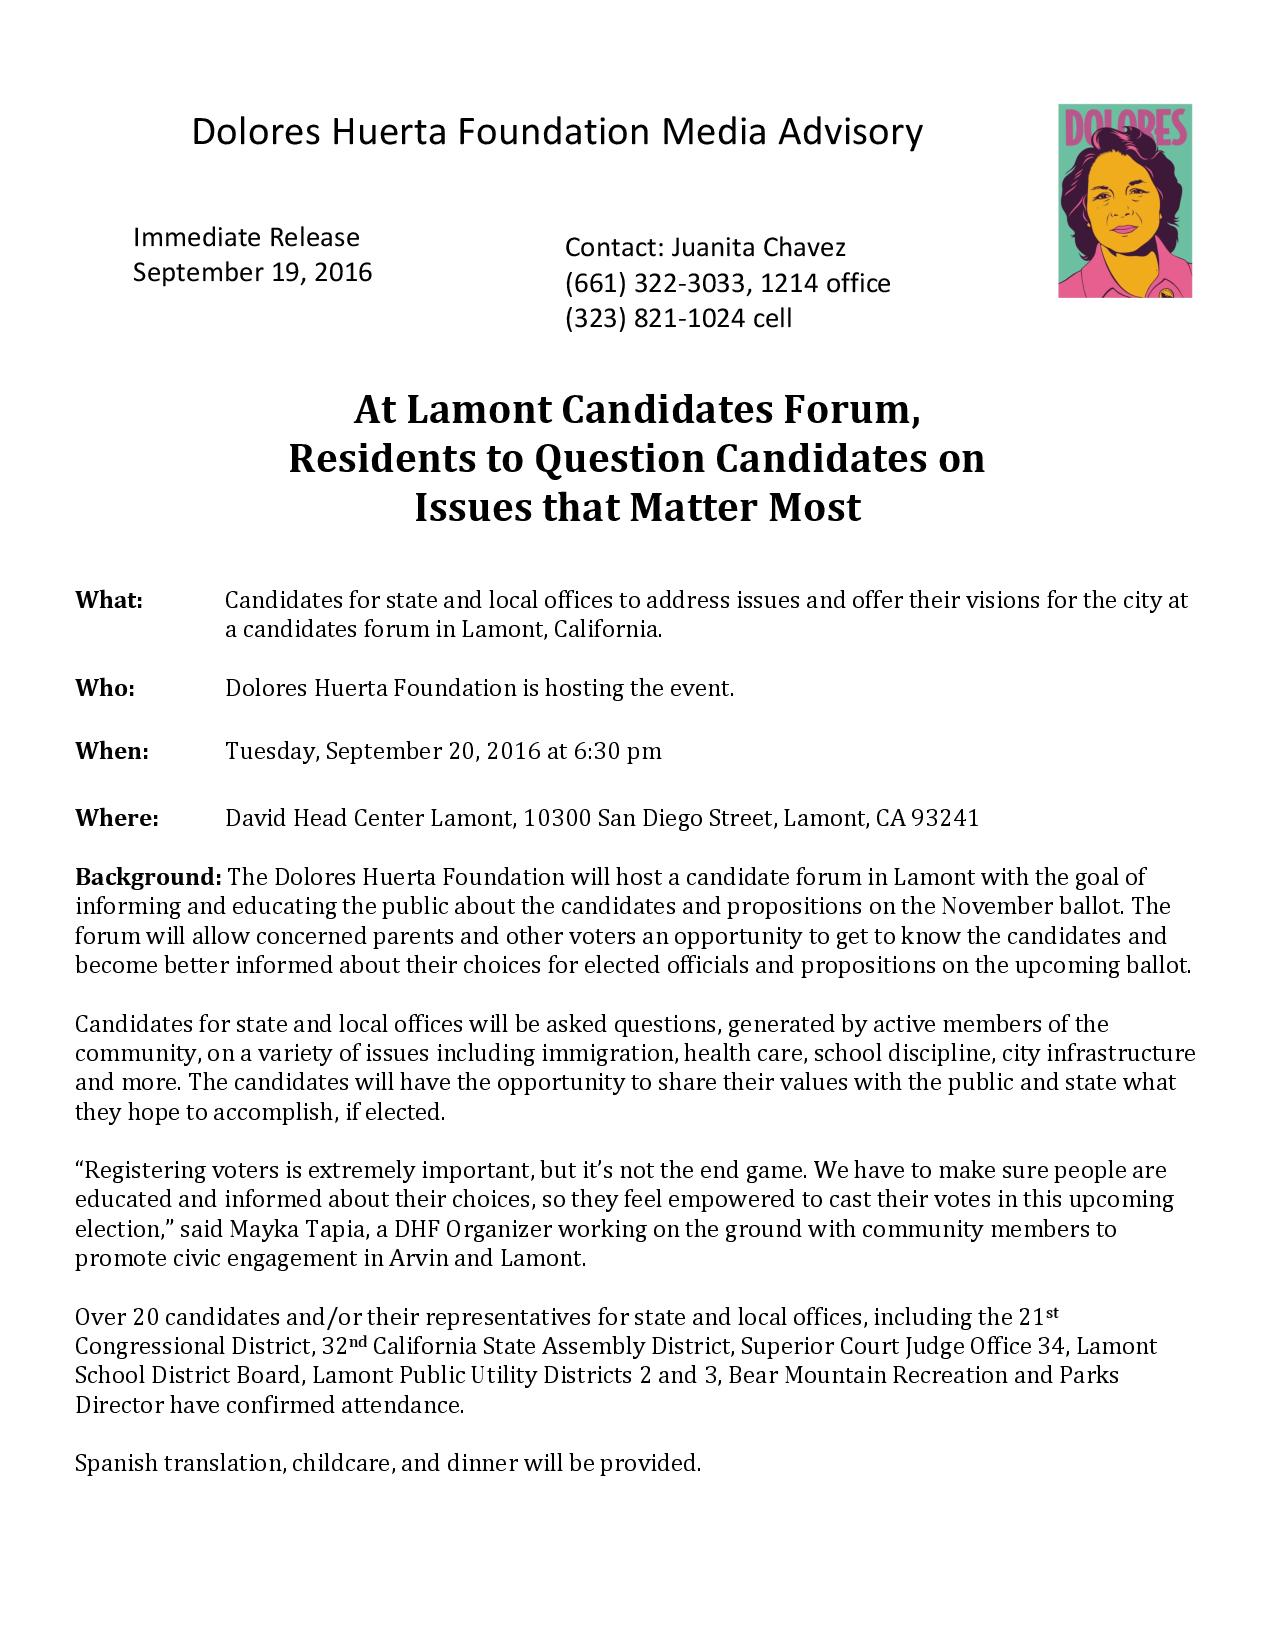 media-advisory-lamont-candidates-forum-9-20-16-page-001